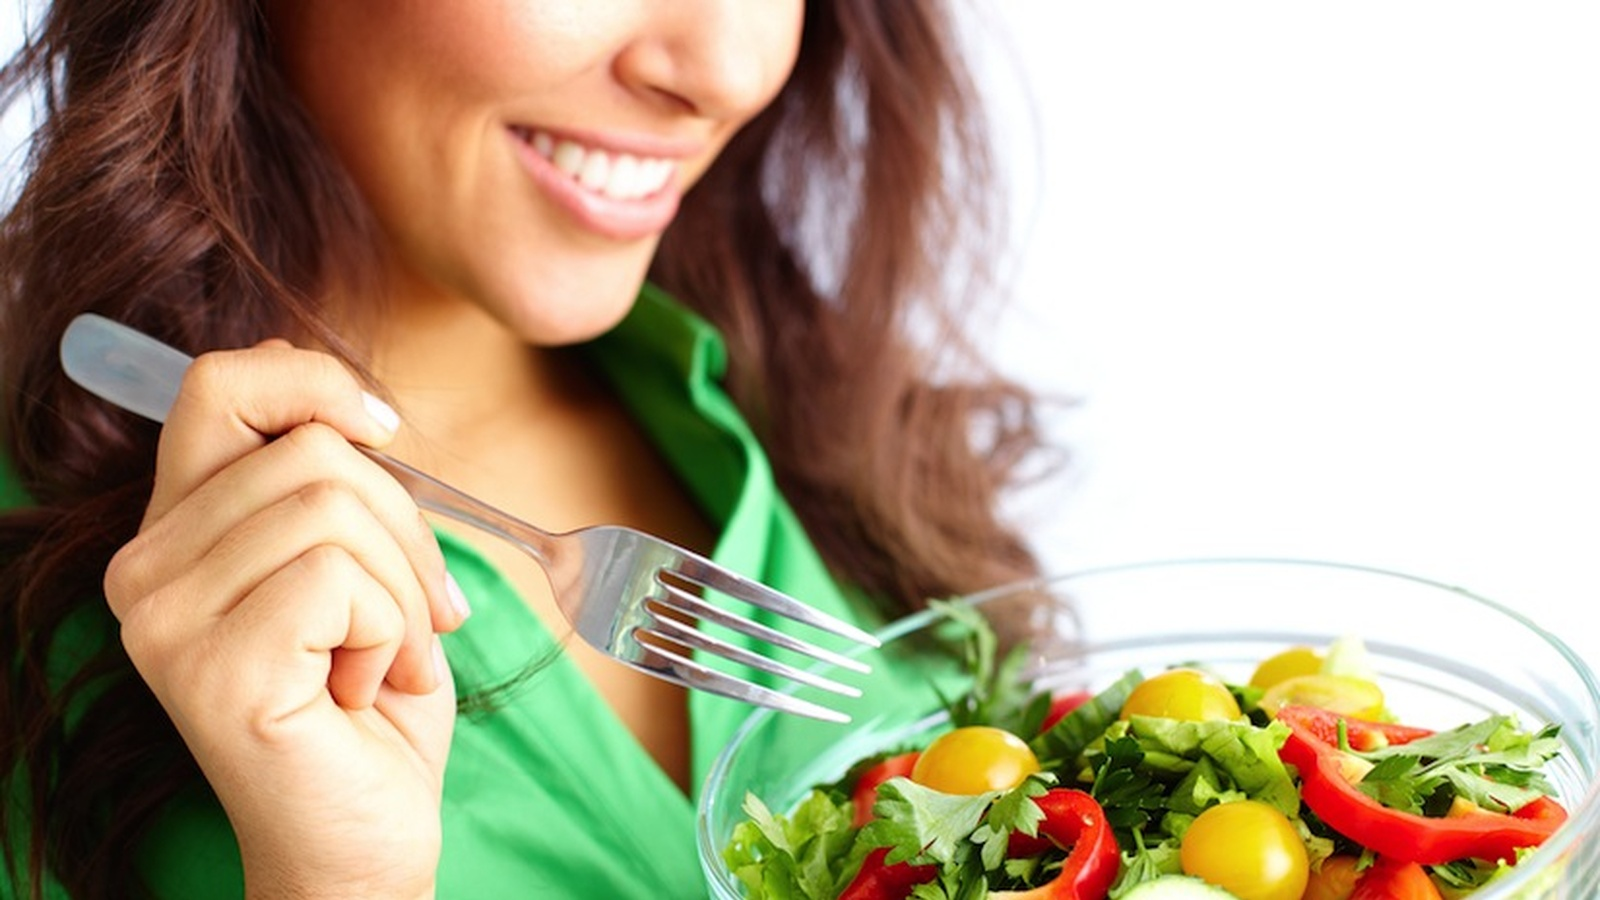 3 Tips to Start Eating Consciously